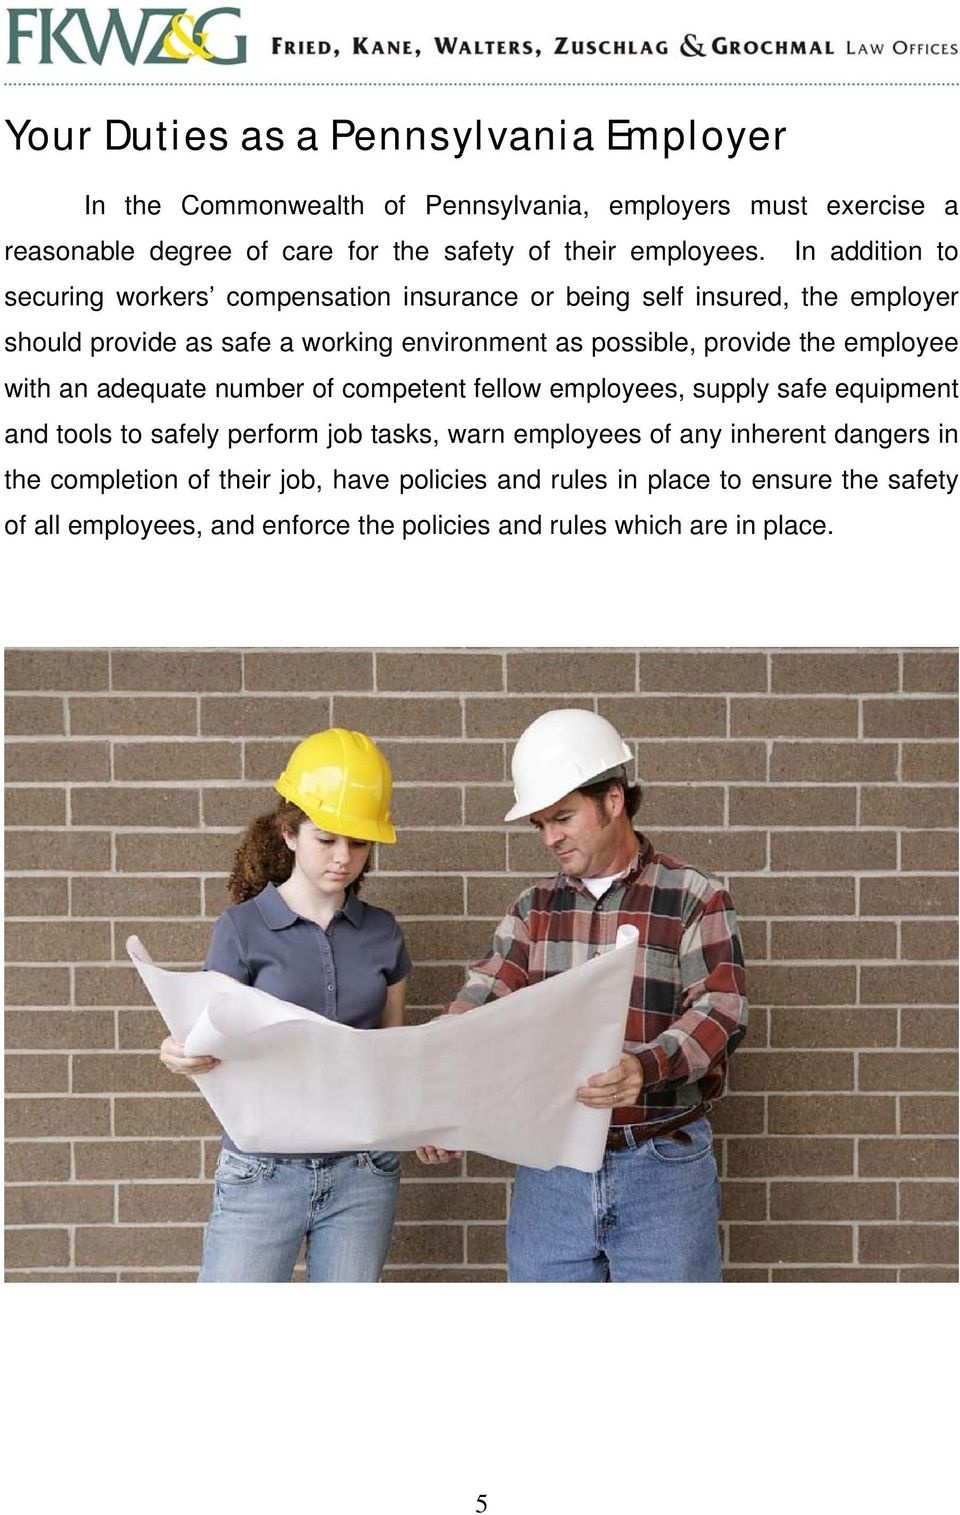 employee with an adequate number of competent fellow employees, supply safe equipment and tools to safely perform job tasks, warn employees of any inherent